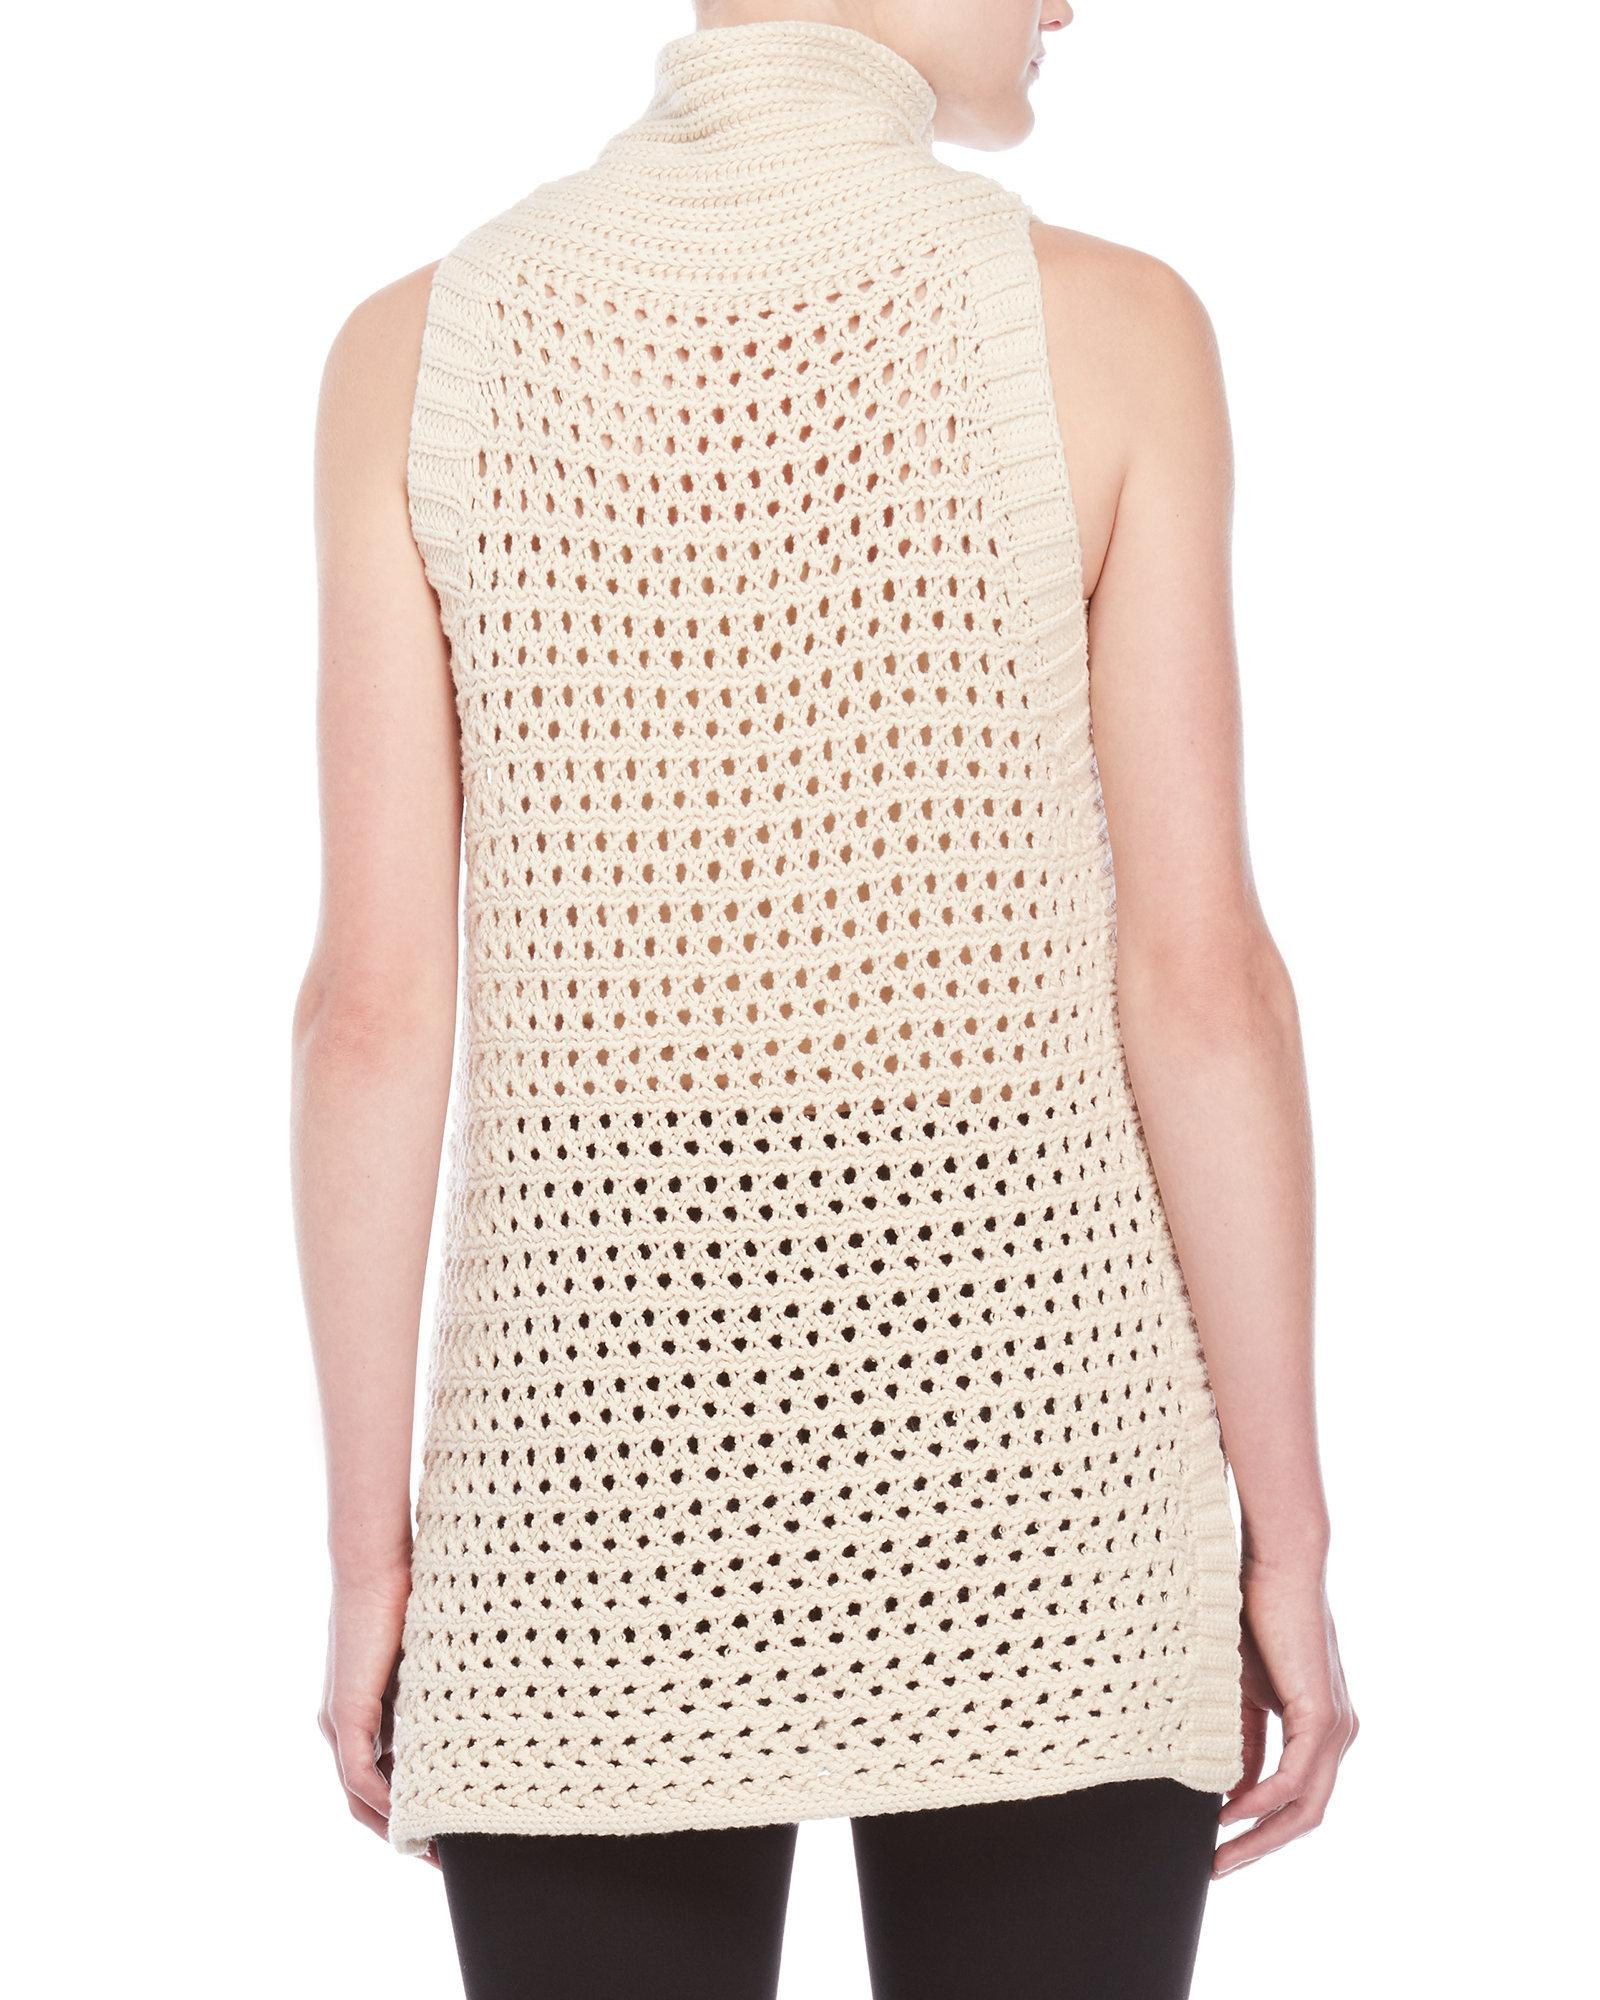 125c07ce8044a Lyst - Free People Northern Lights Sleeveless Turtleneck in White